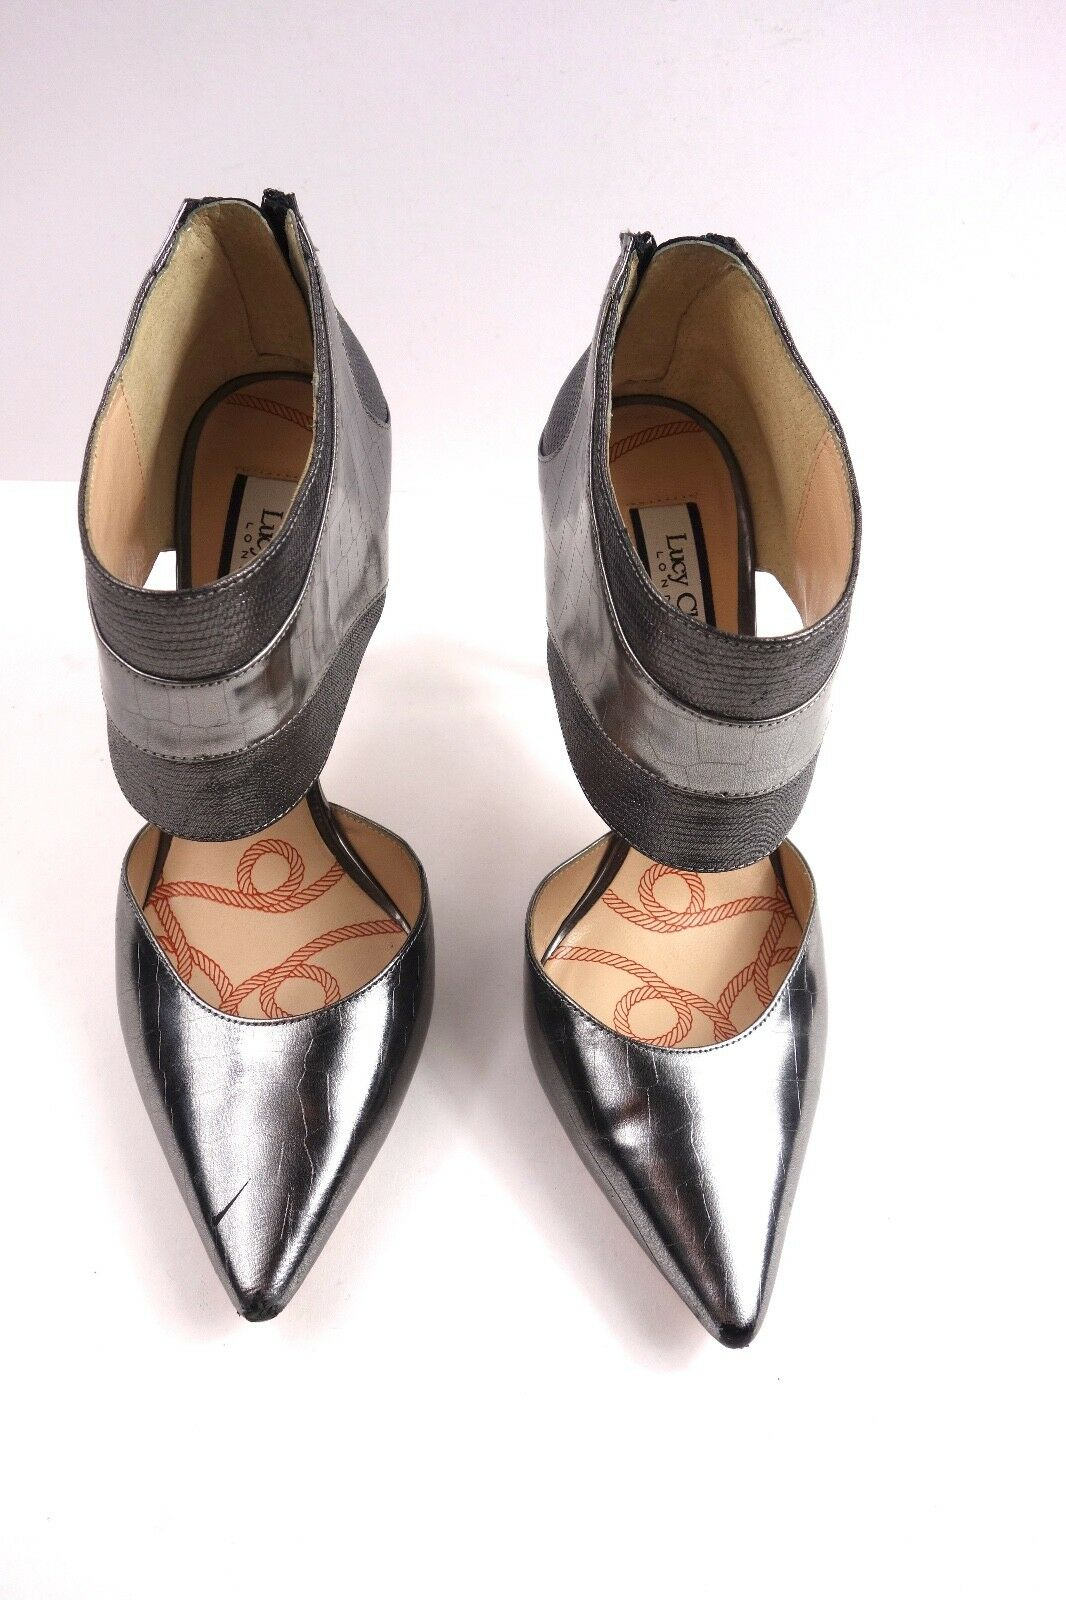 Lucy Lucy Lucy Choi Pewter Metallic Leather schuhe by Lucy Choi Designer schuhe Größe 38 377bd4